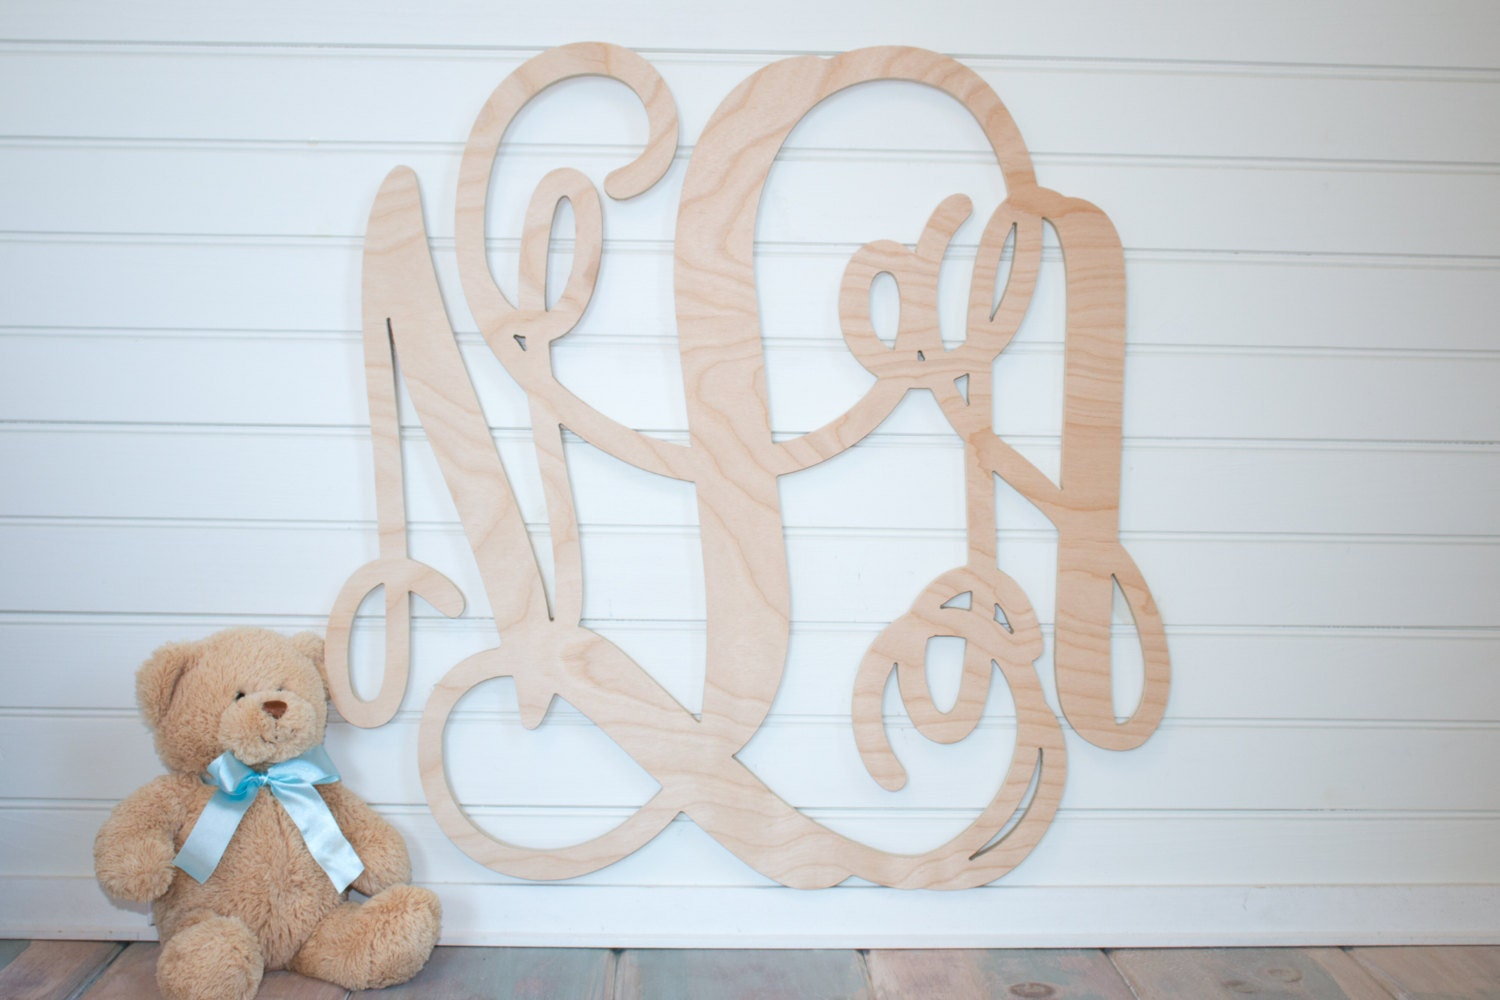 Monogram Wall Decor Diy : Unpainted wooden monogram diy wall decor